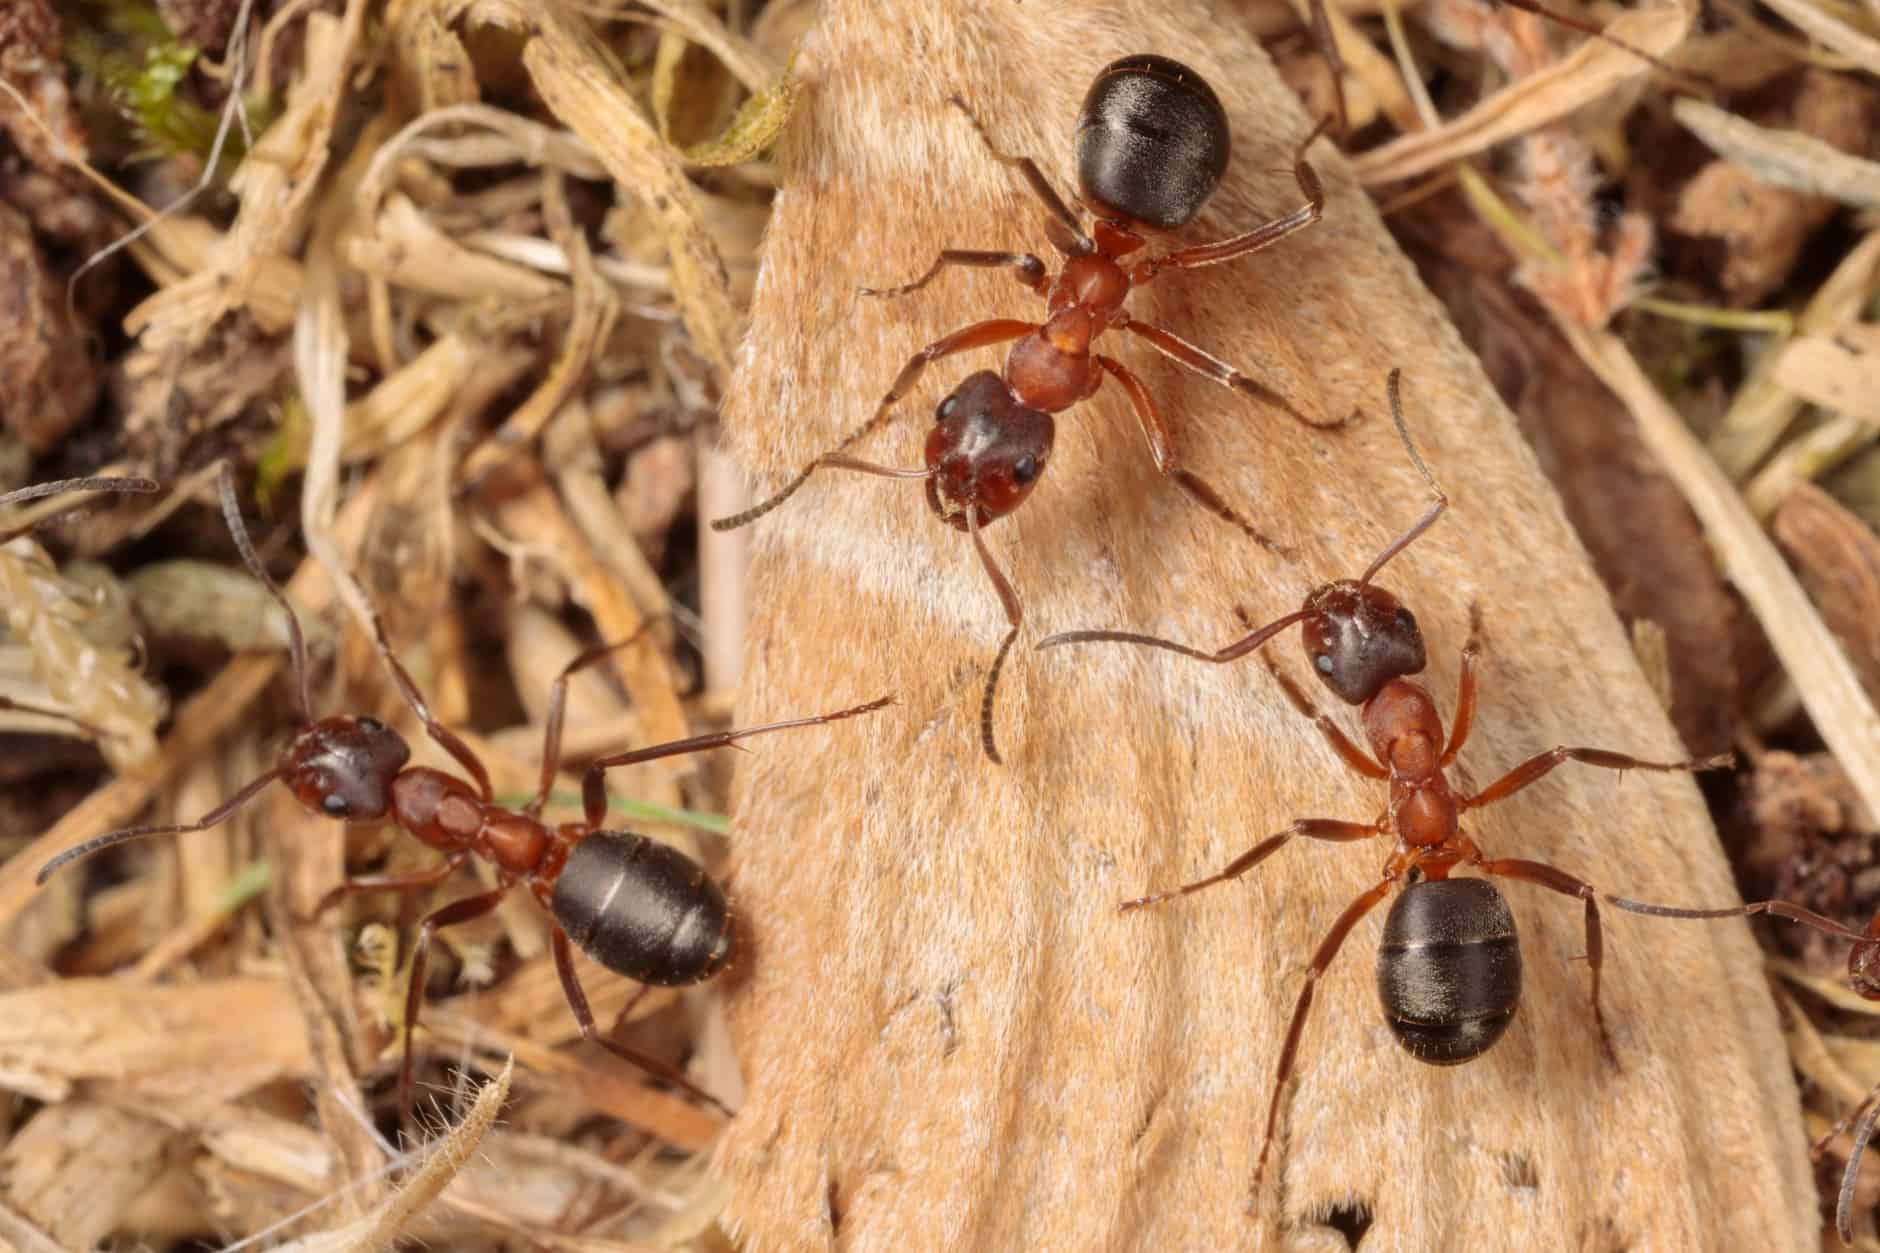 Narrow-headed Ant (Formica exsecta) - Back From The Brink